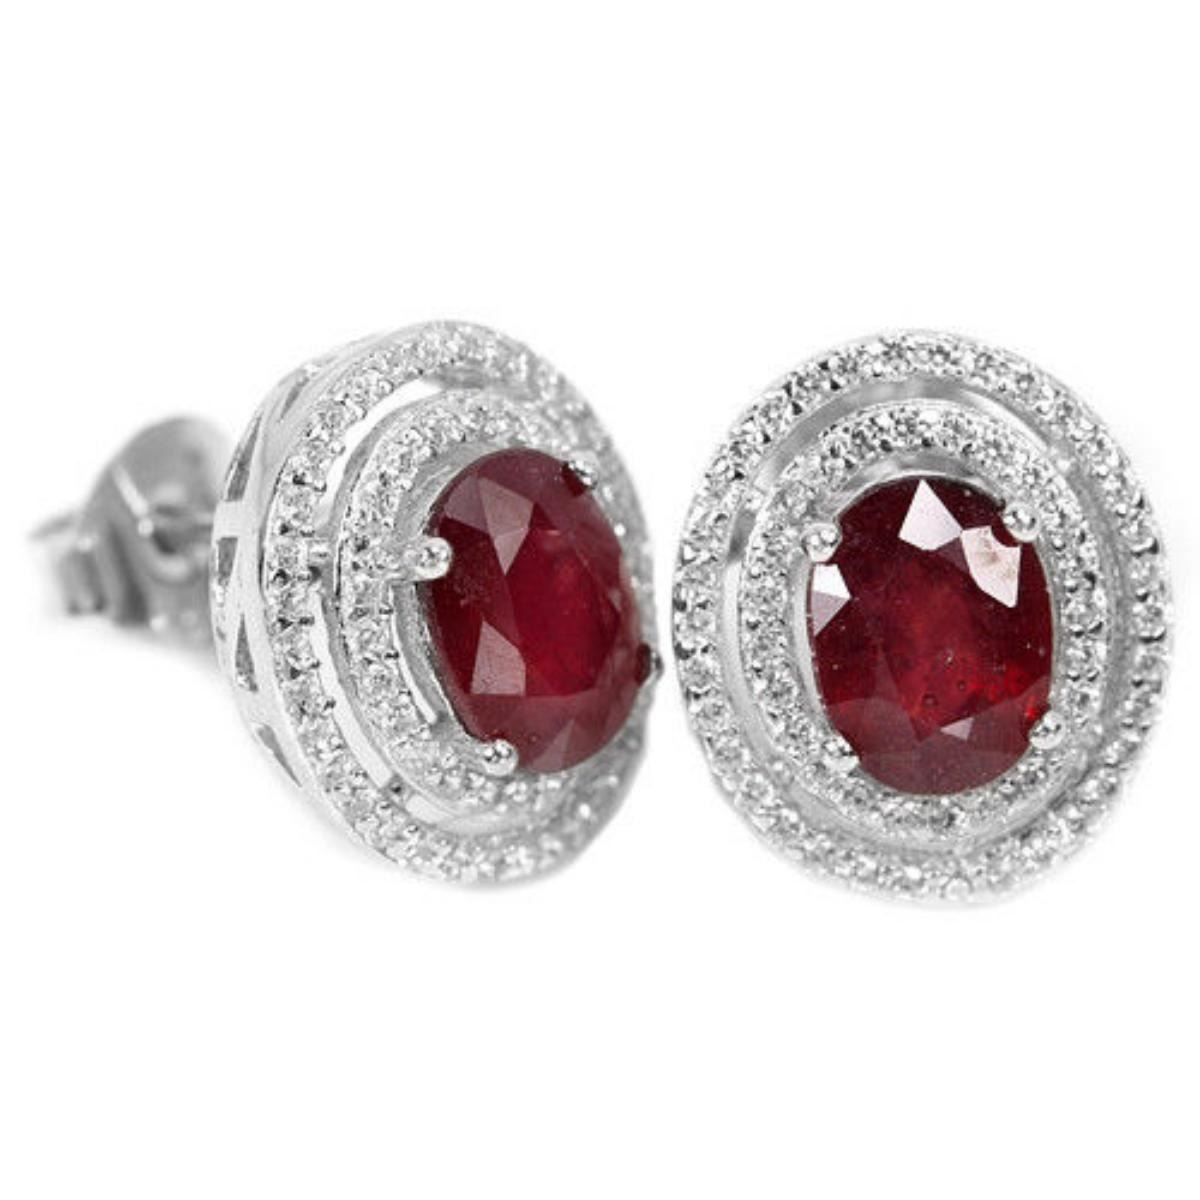 women cut ruby jewelry fashion created sterling in on from jewelrypalace clip item silver earrings for red fine emerald earring